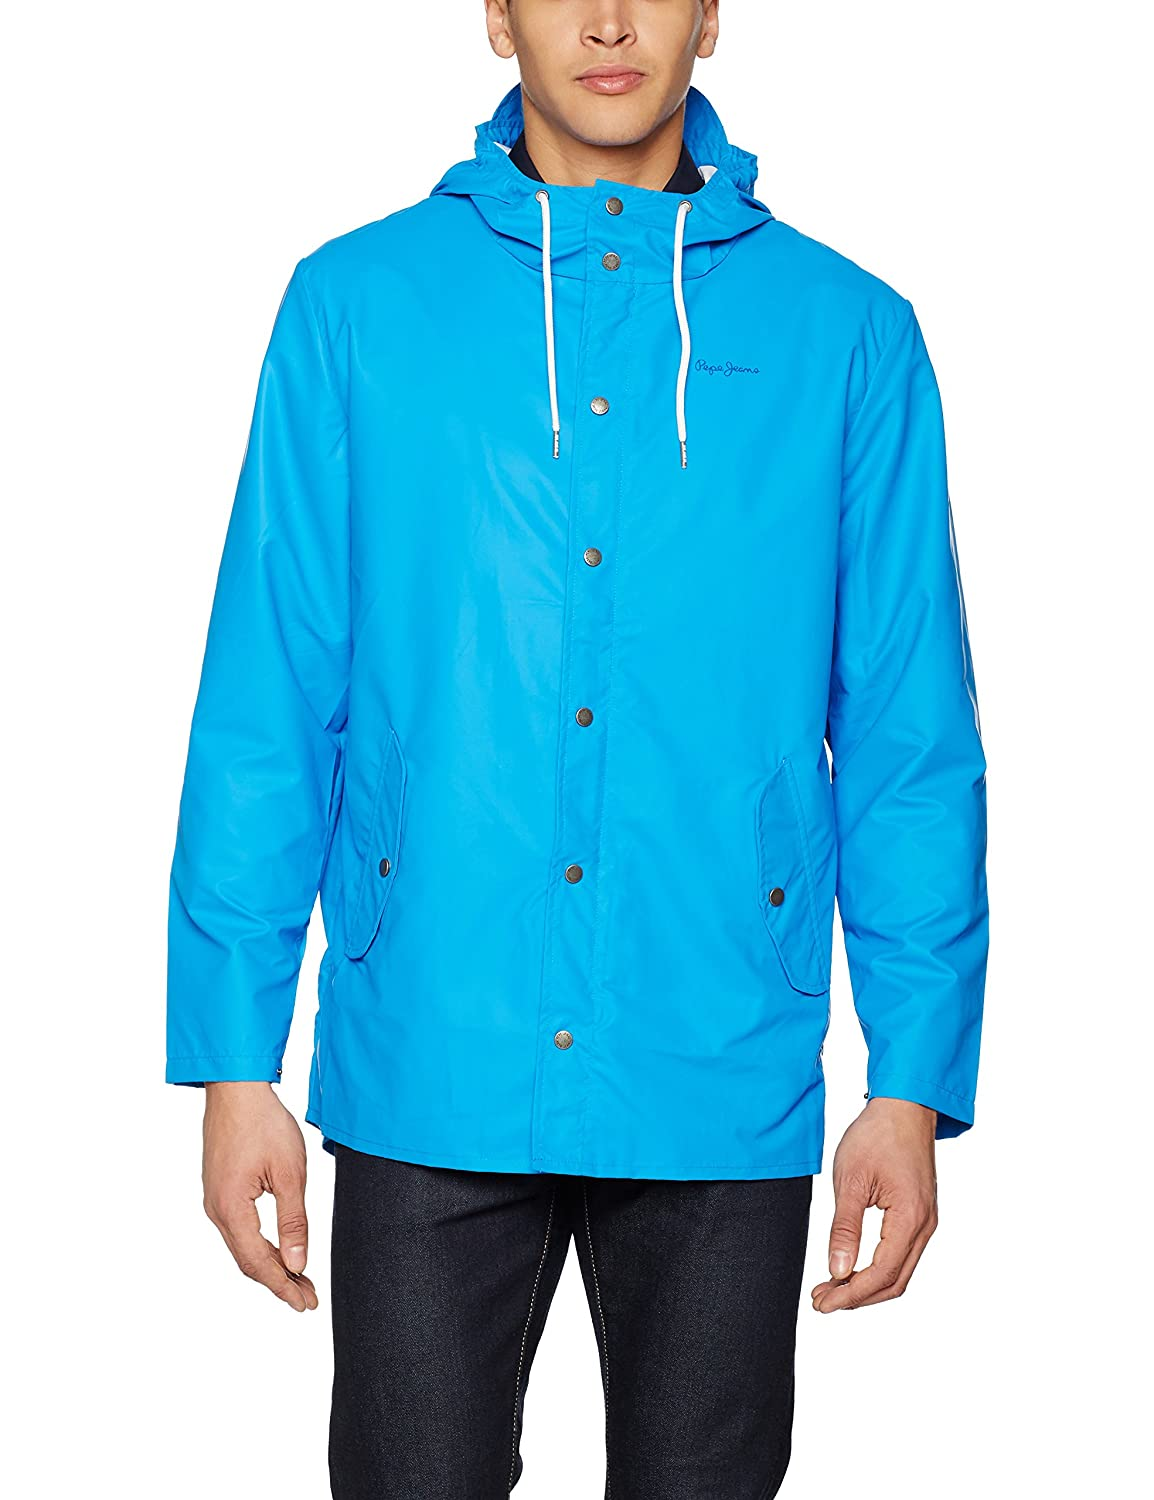 TALLA XL. Pepe Jeans PM401288, Chaqueta Impermeable Para Hombre